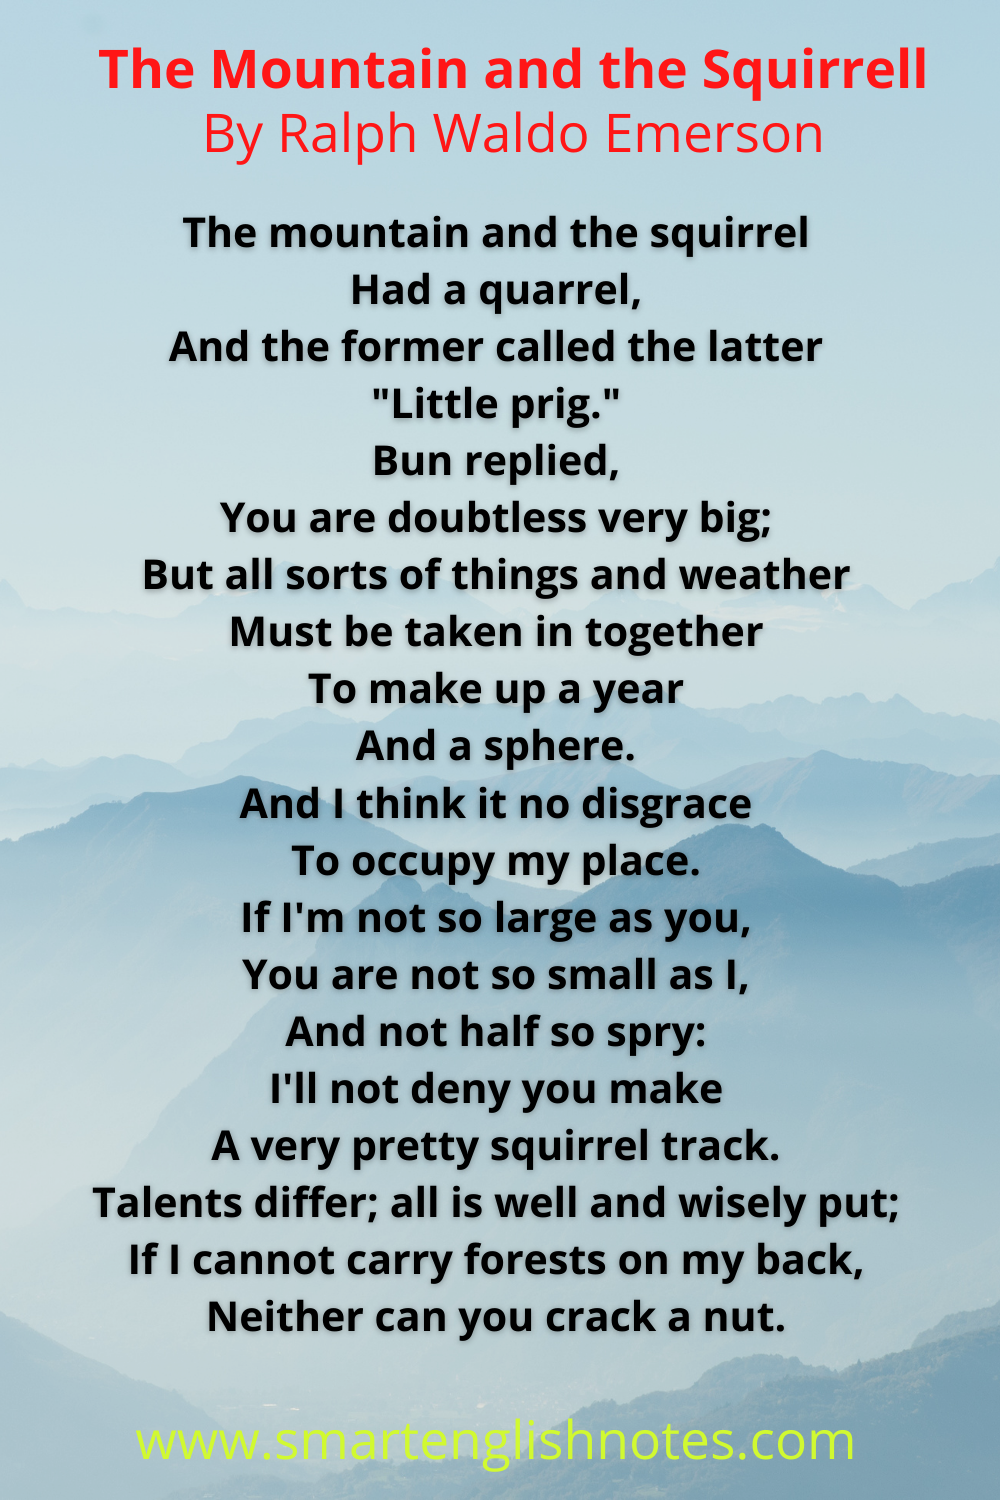 The mountain and the squirrel